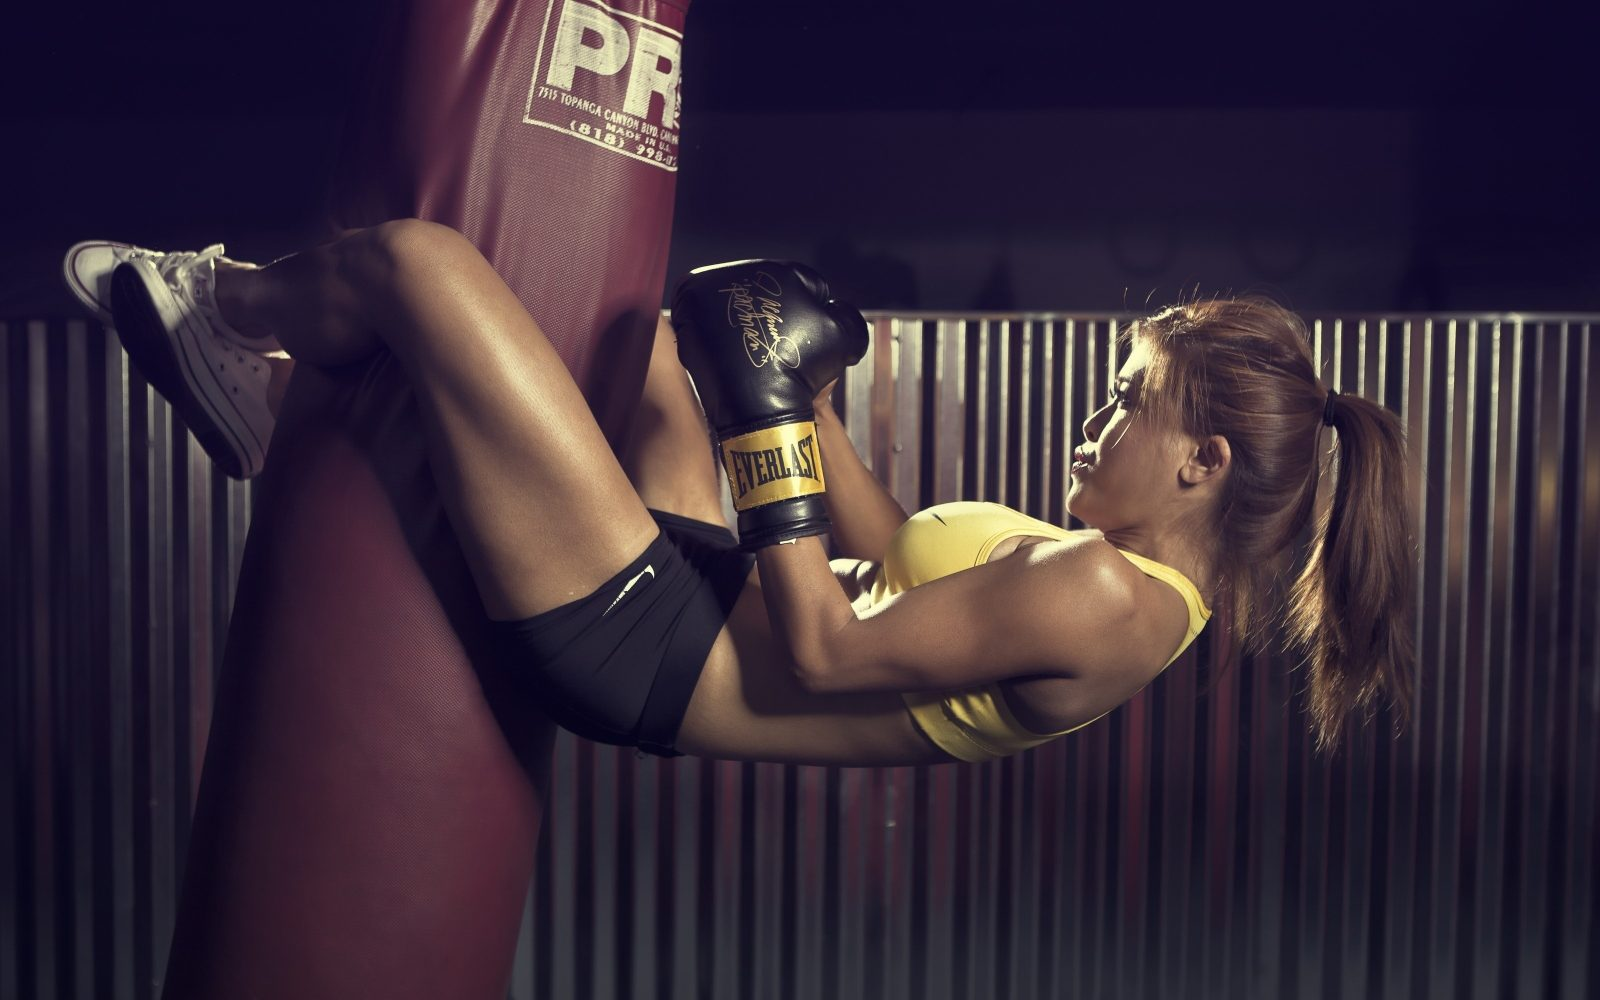 Nude girl gorgeous girls boxing girl